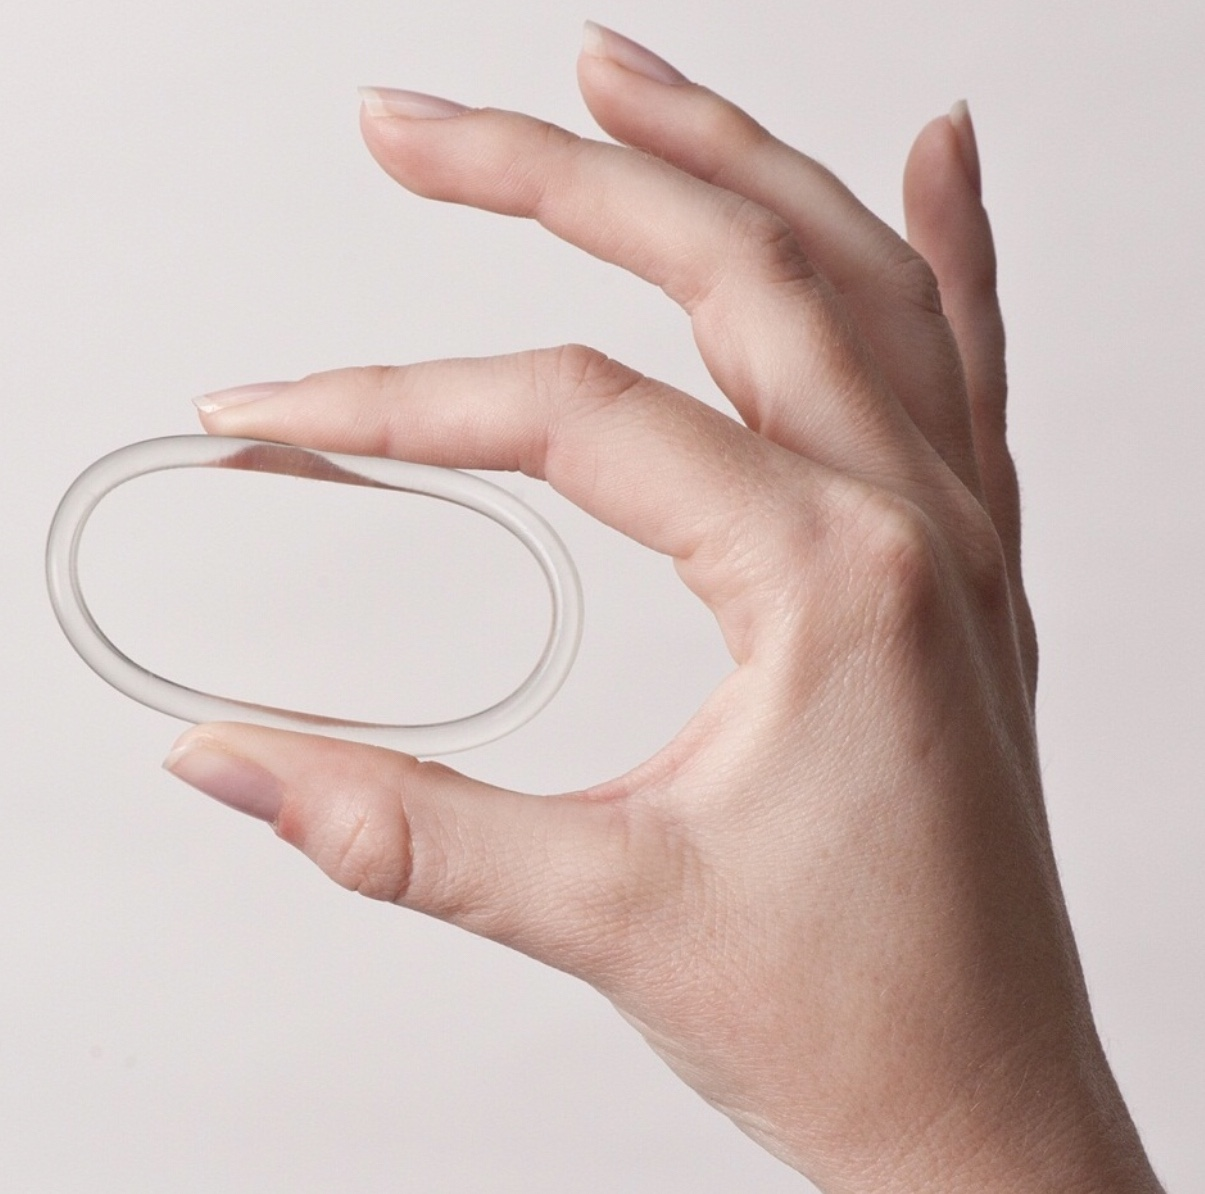 Vaginal ring contraceptive method